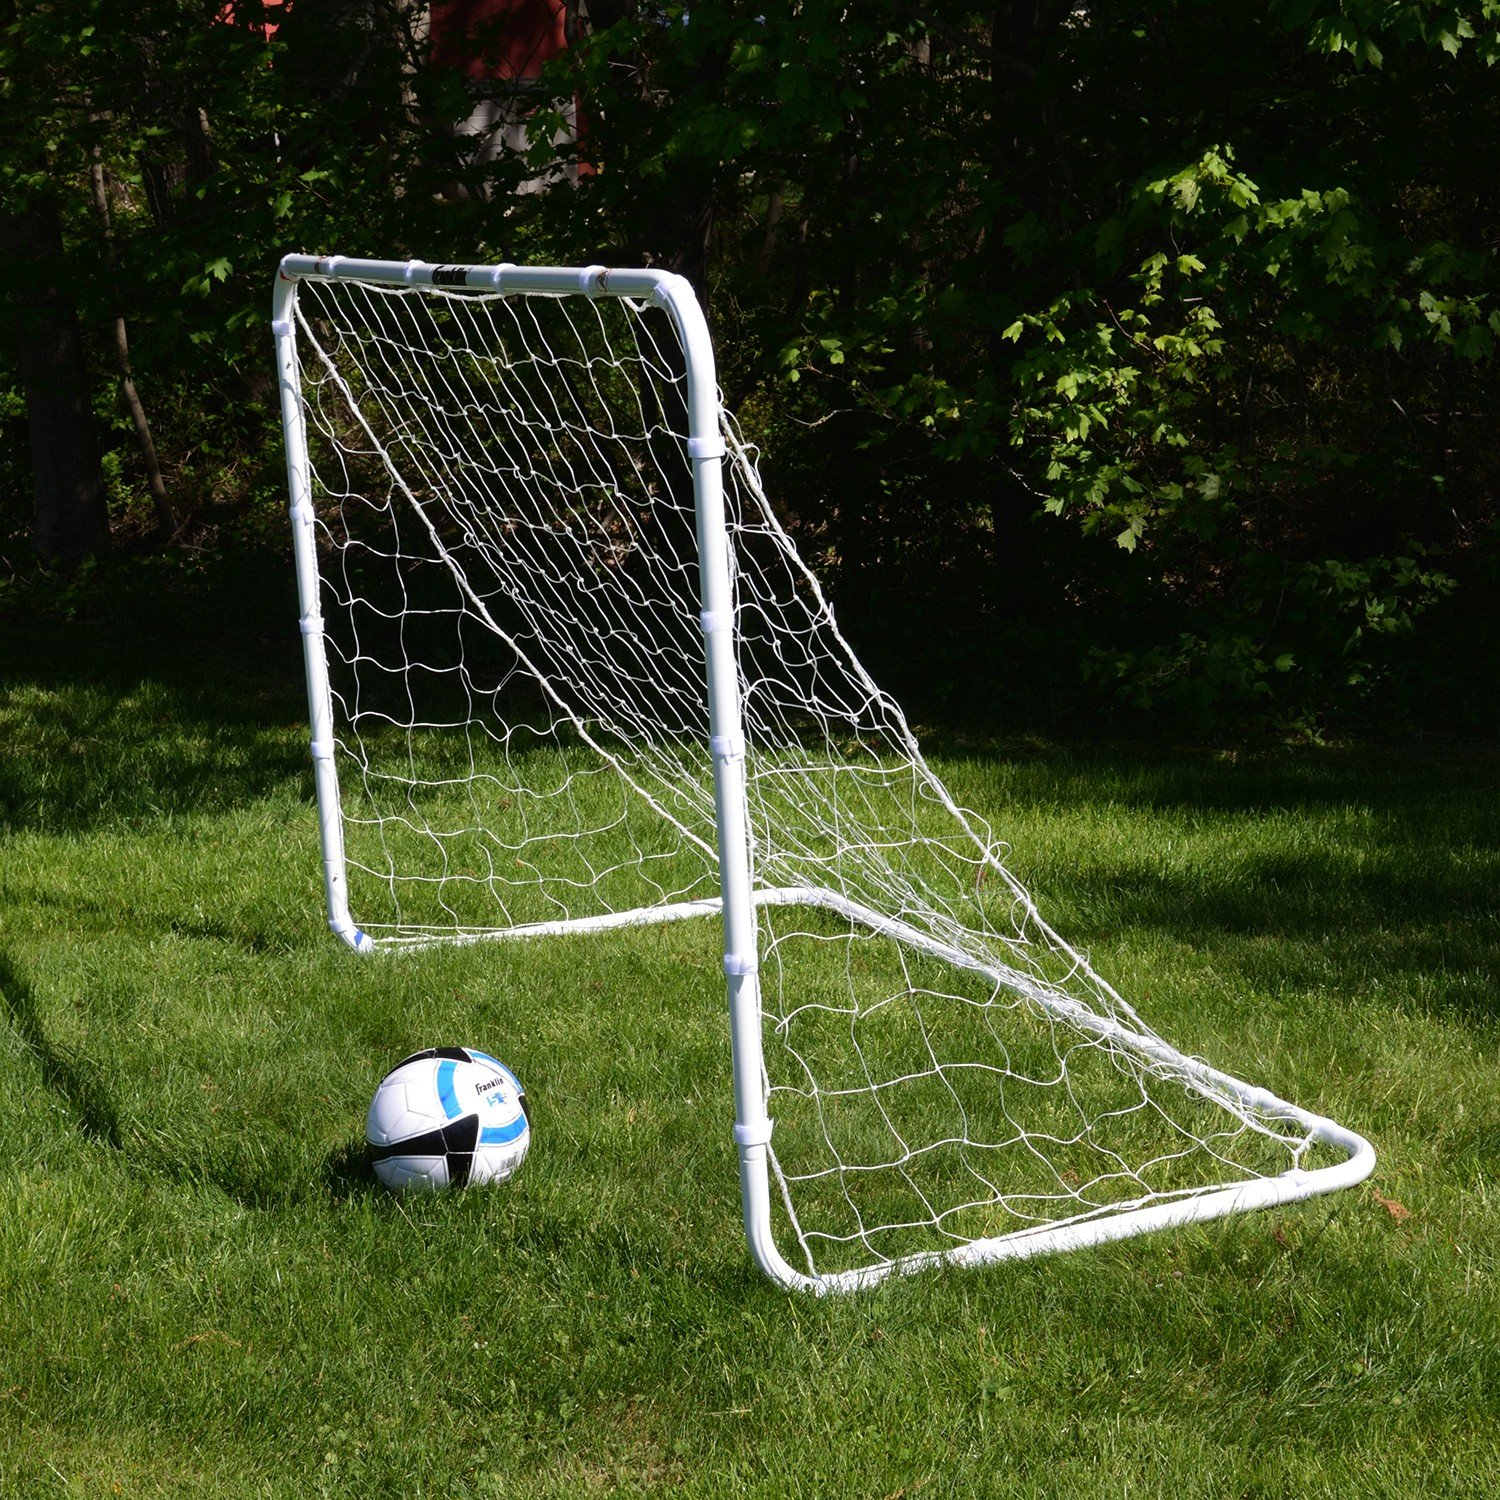 Franklin Sports Competition Soccer Goal – Soccer Net – Soccer Goal for Backyard – Steel Construction – 6 Ft by 4 Ft by Franklin Sports (Image #4)